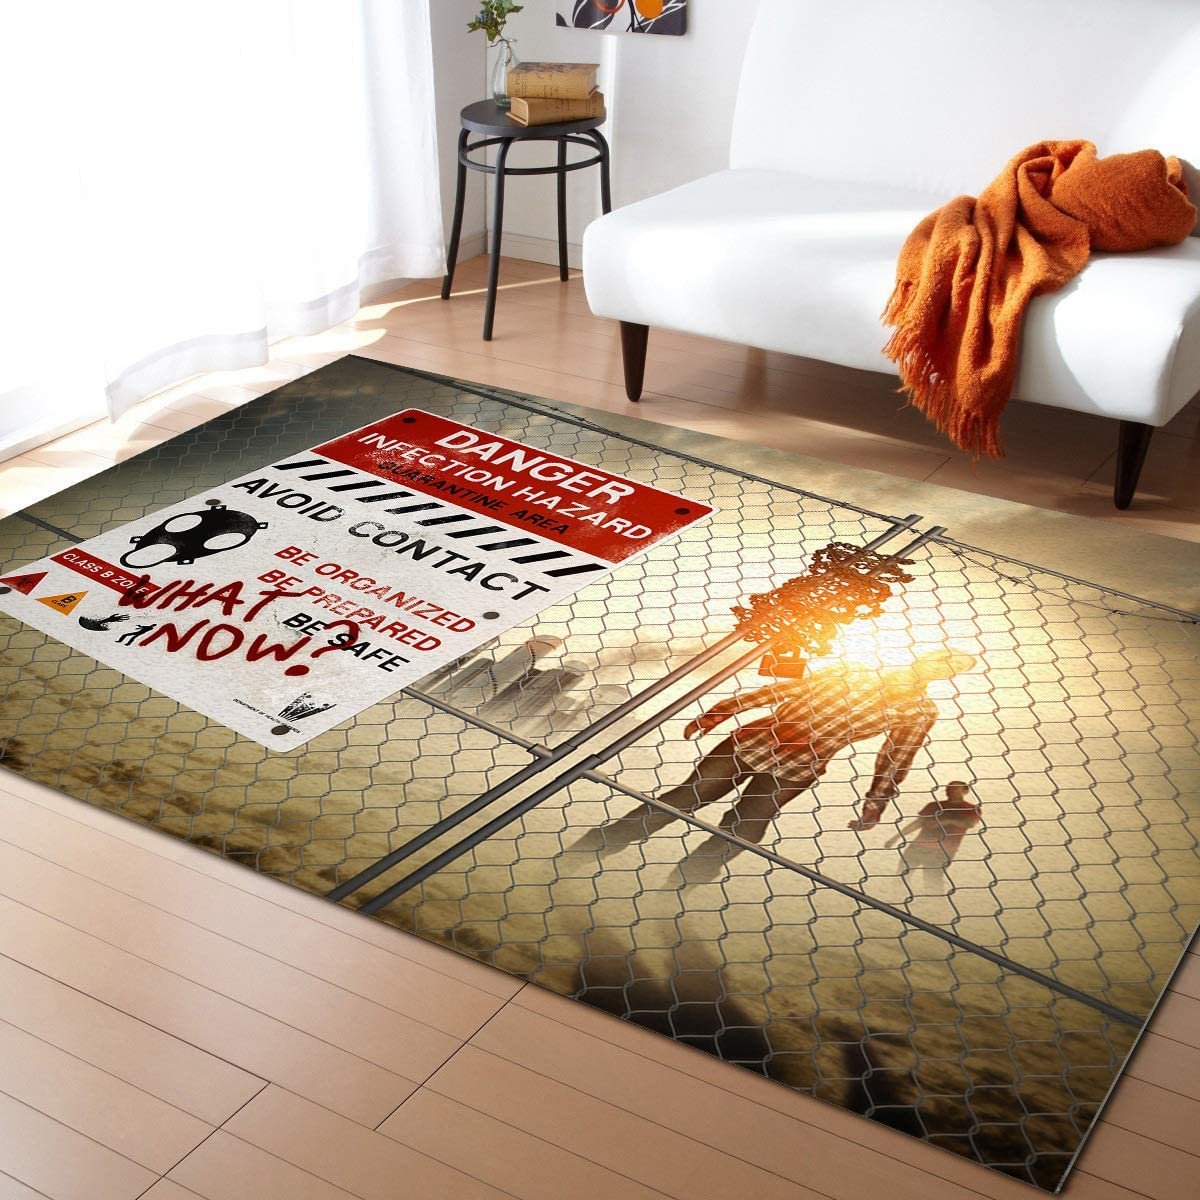 Contemporary Area 67% OFF of fixed price Rugs Superior for Bedroom Living 4'x6' Kids Room -